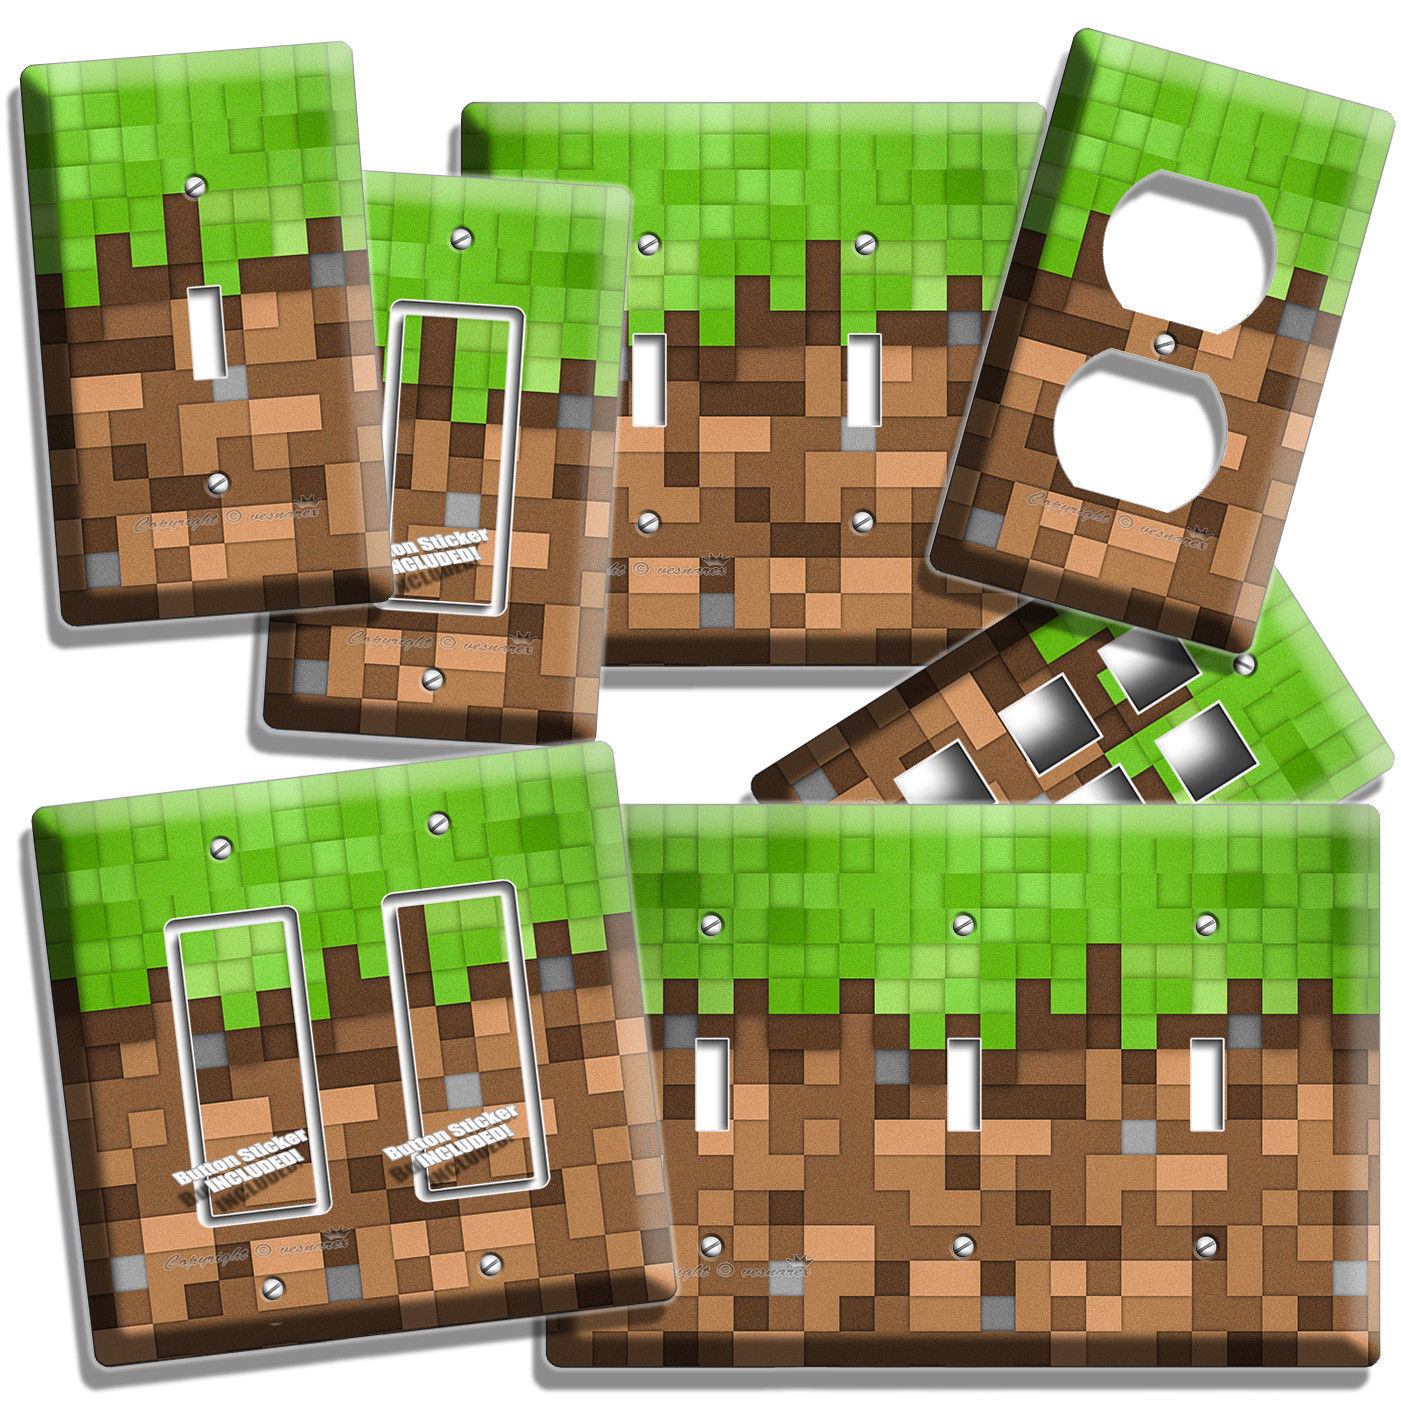 VIDEO GAME PIXELS BLOCKS LIGHT SWITCH WALL PLATE OUTLET BOYS BEDROOM ROOM DECOR - $10.99 - $22.99